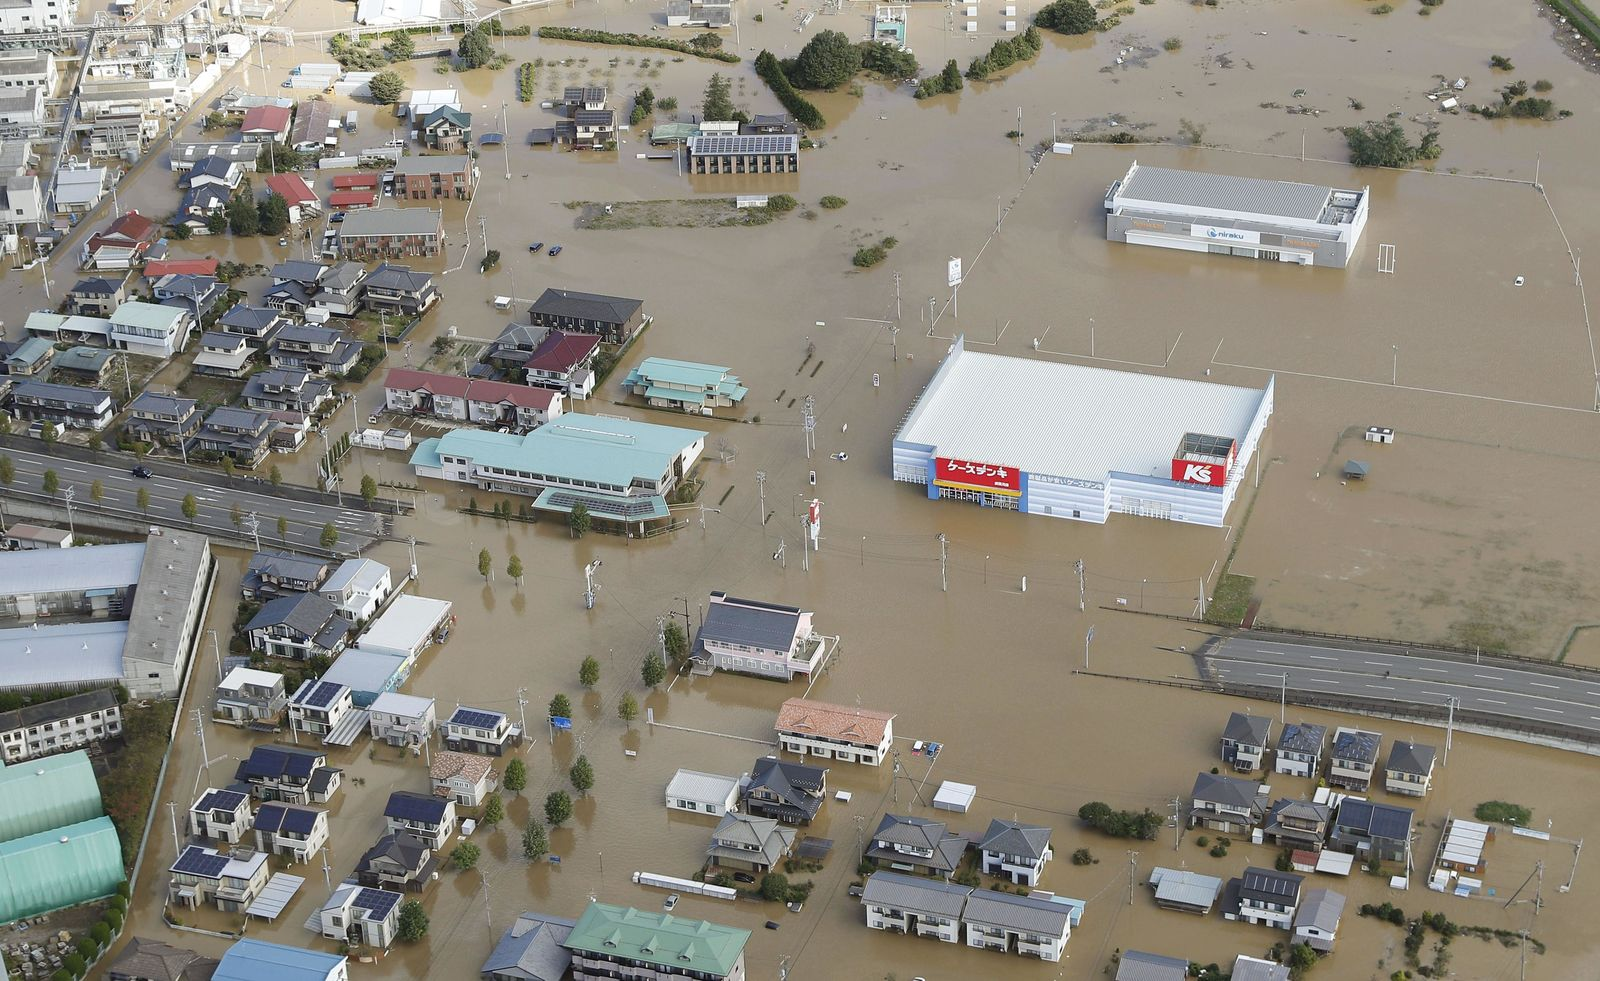 Houses are submerged in muddy waters in Sukagawa, Fukushima prefecture, as Typhoon Hagibis hits the area, northern Japan, Sunday, Oct. 13, 2019. (Takuya Inaba/Kyodo News via AP)